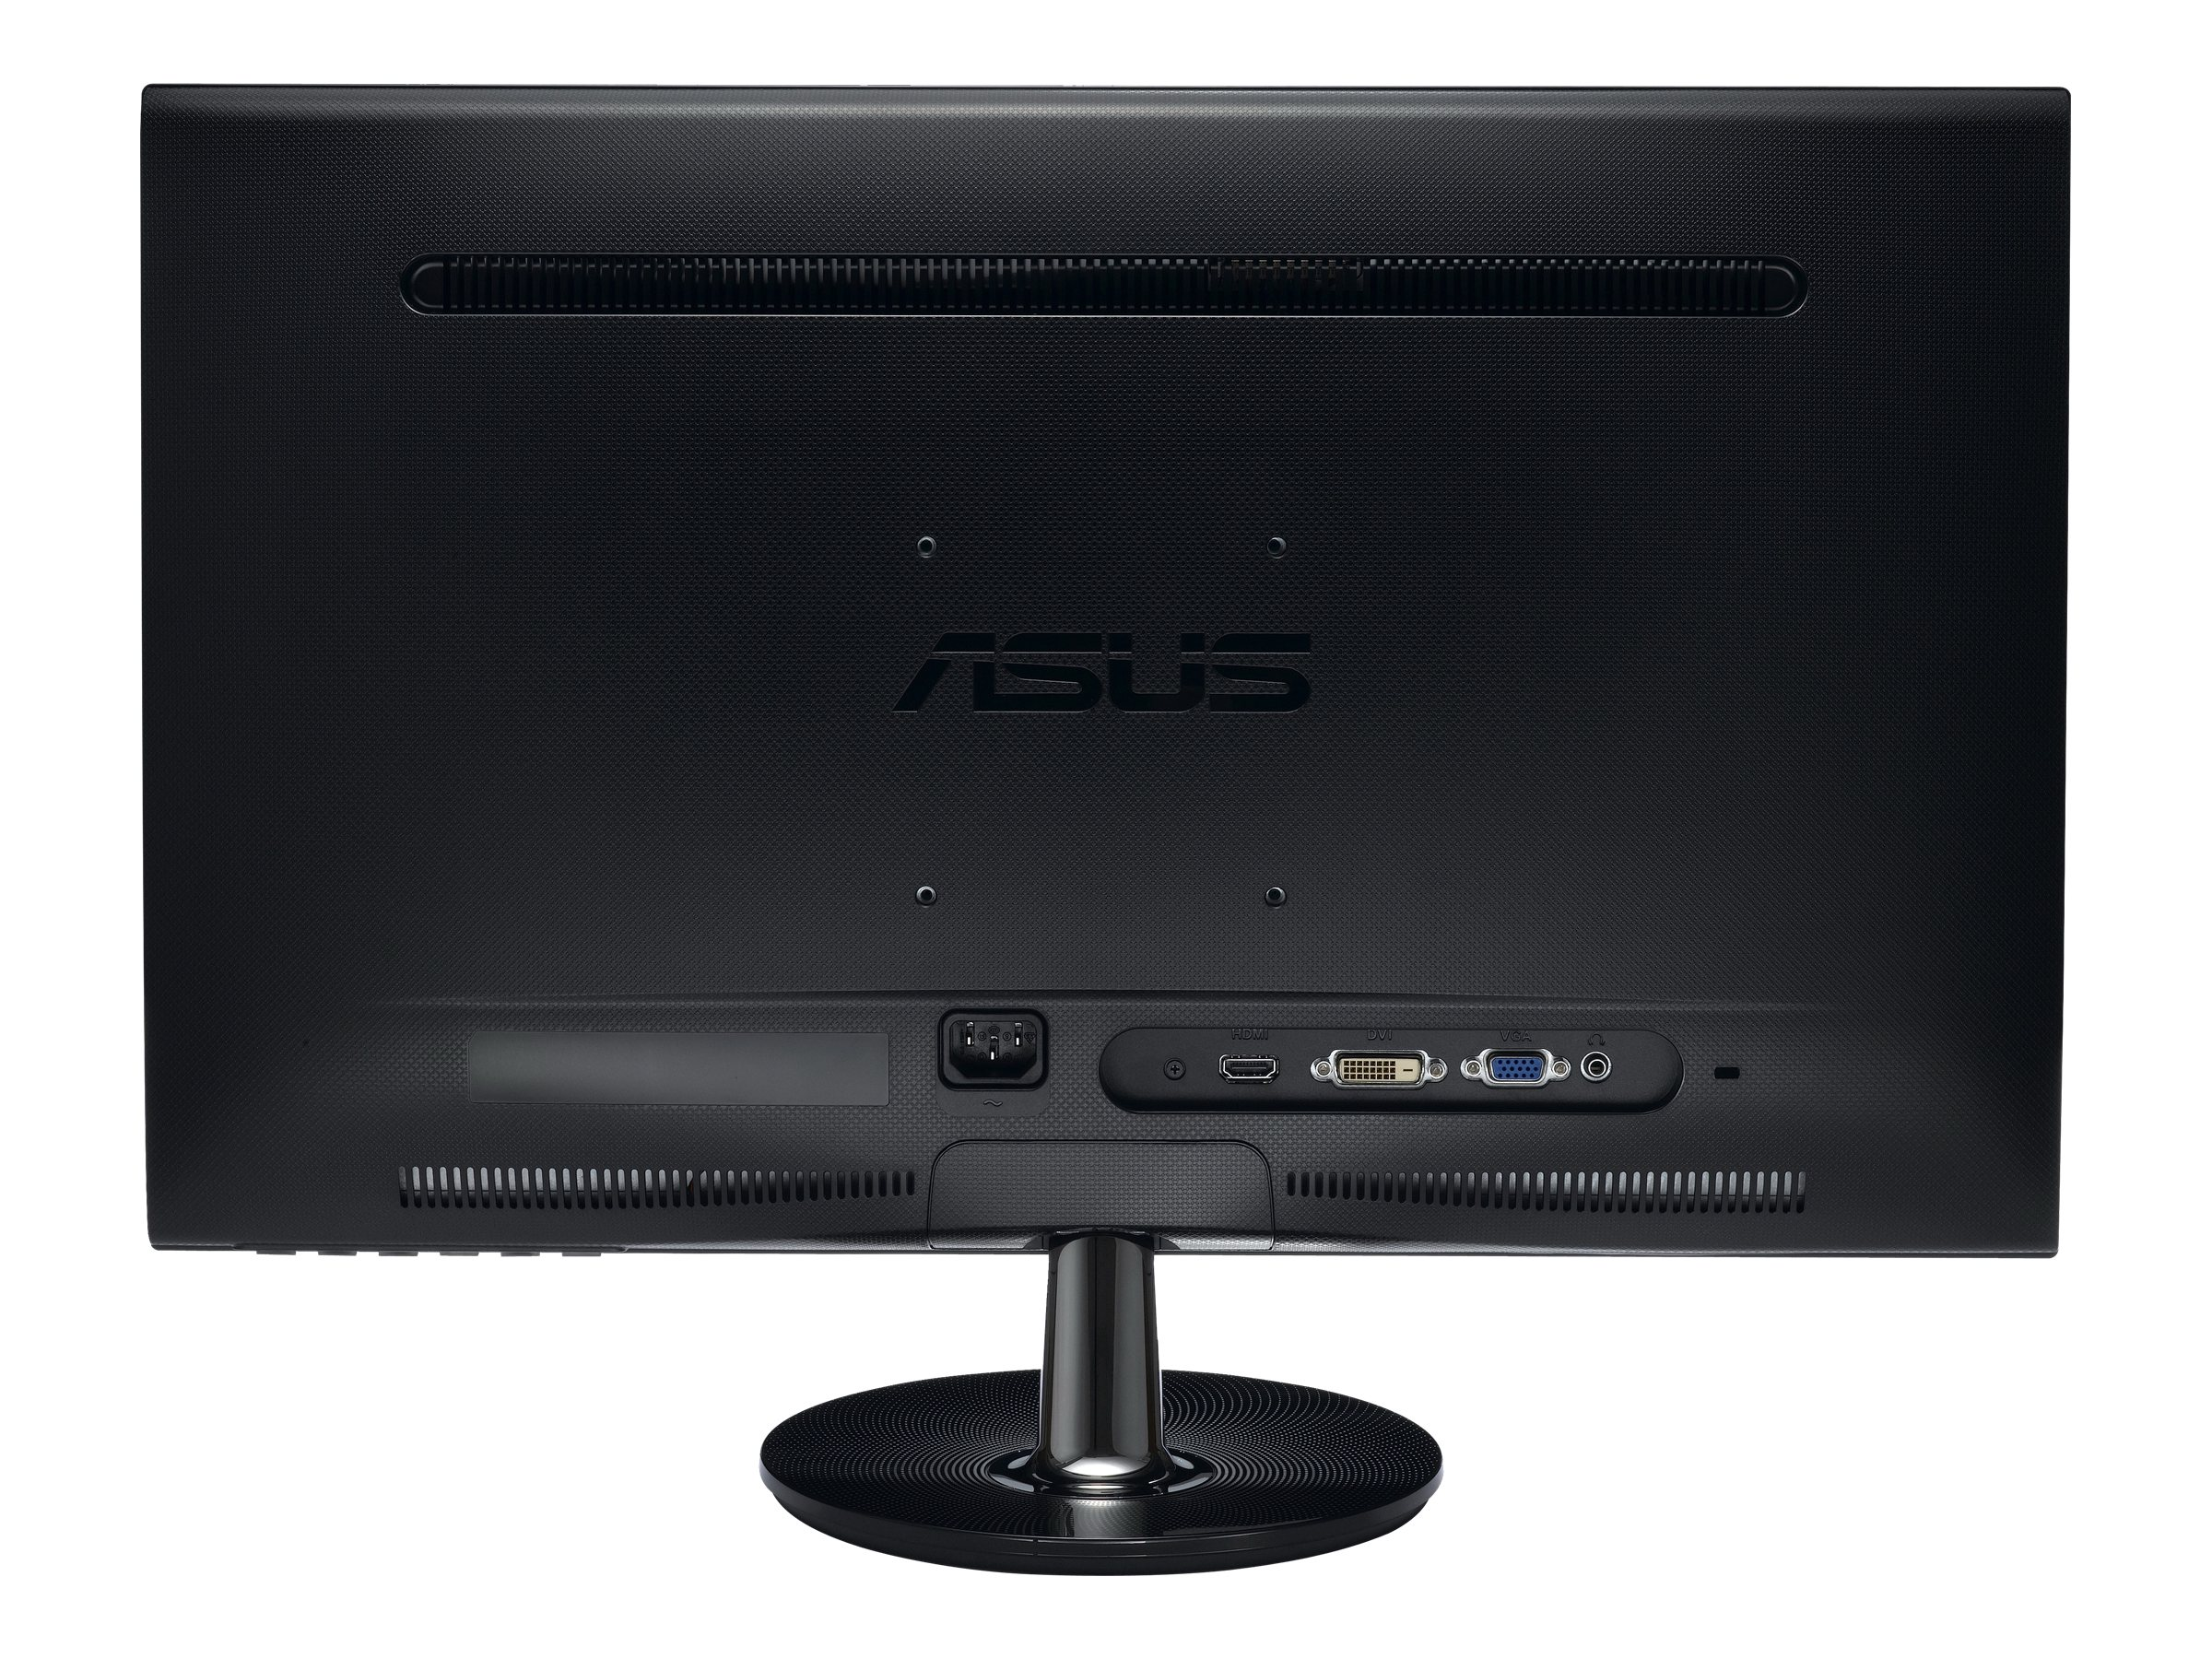 Asus 20 VS207D-P LED-LCD Monitor, Black, VS207D-P